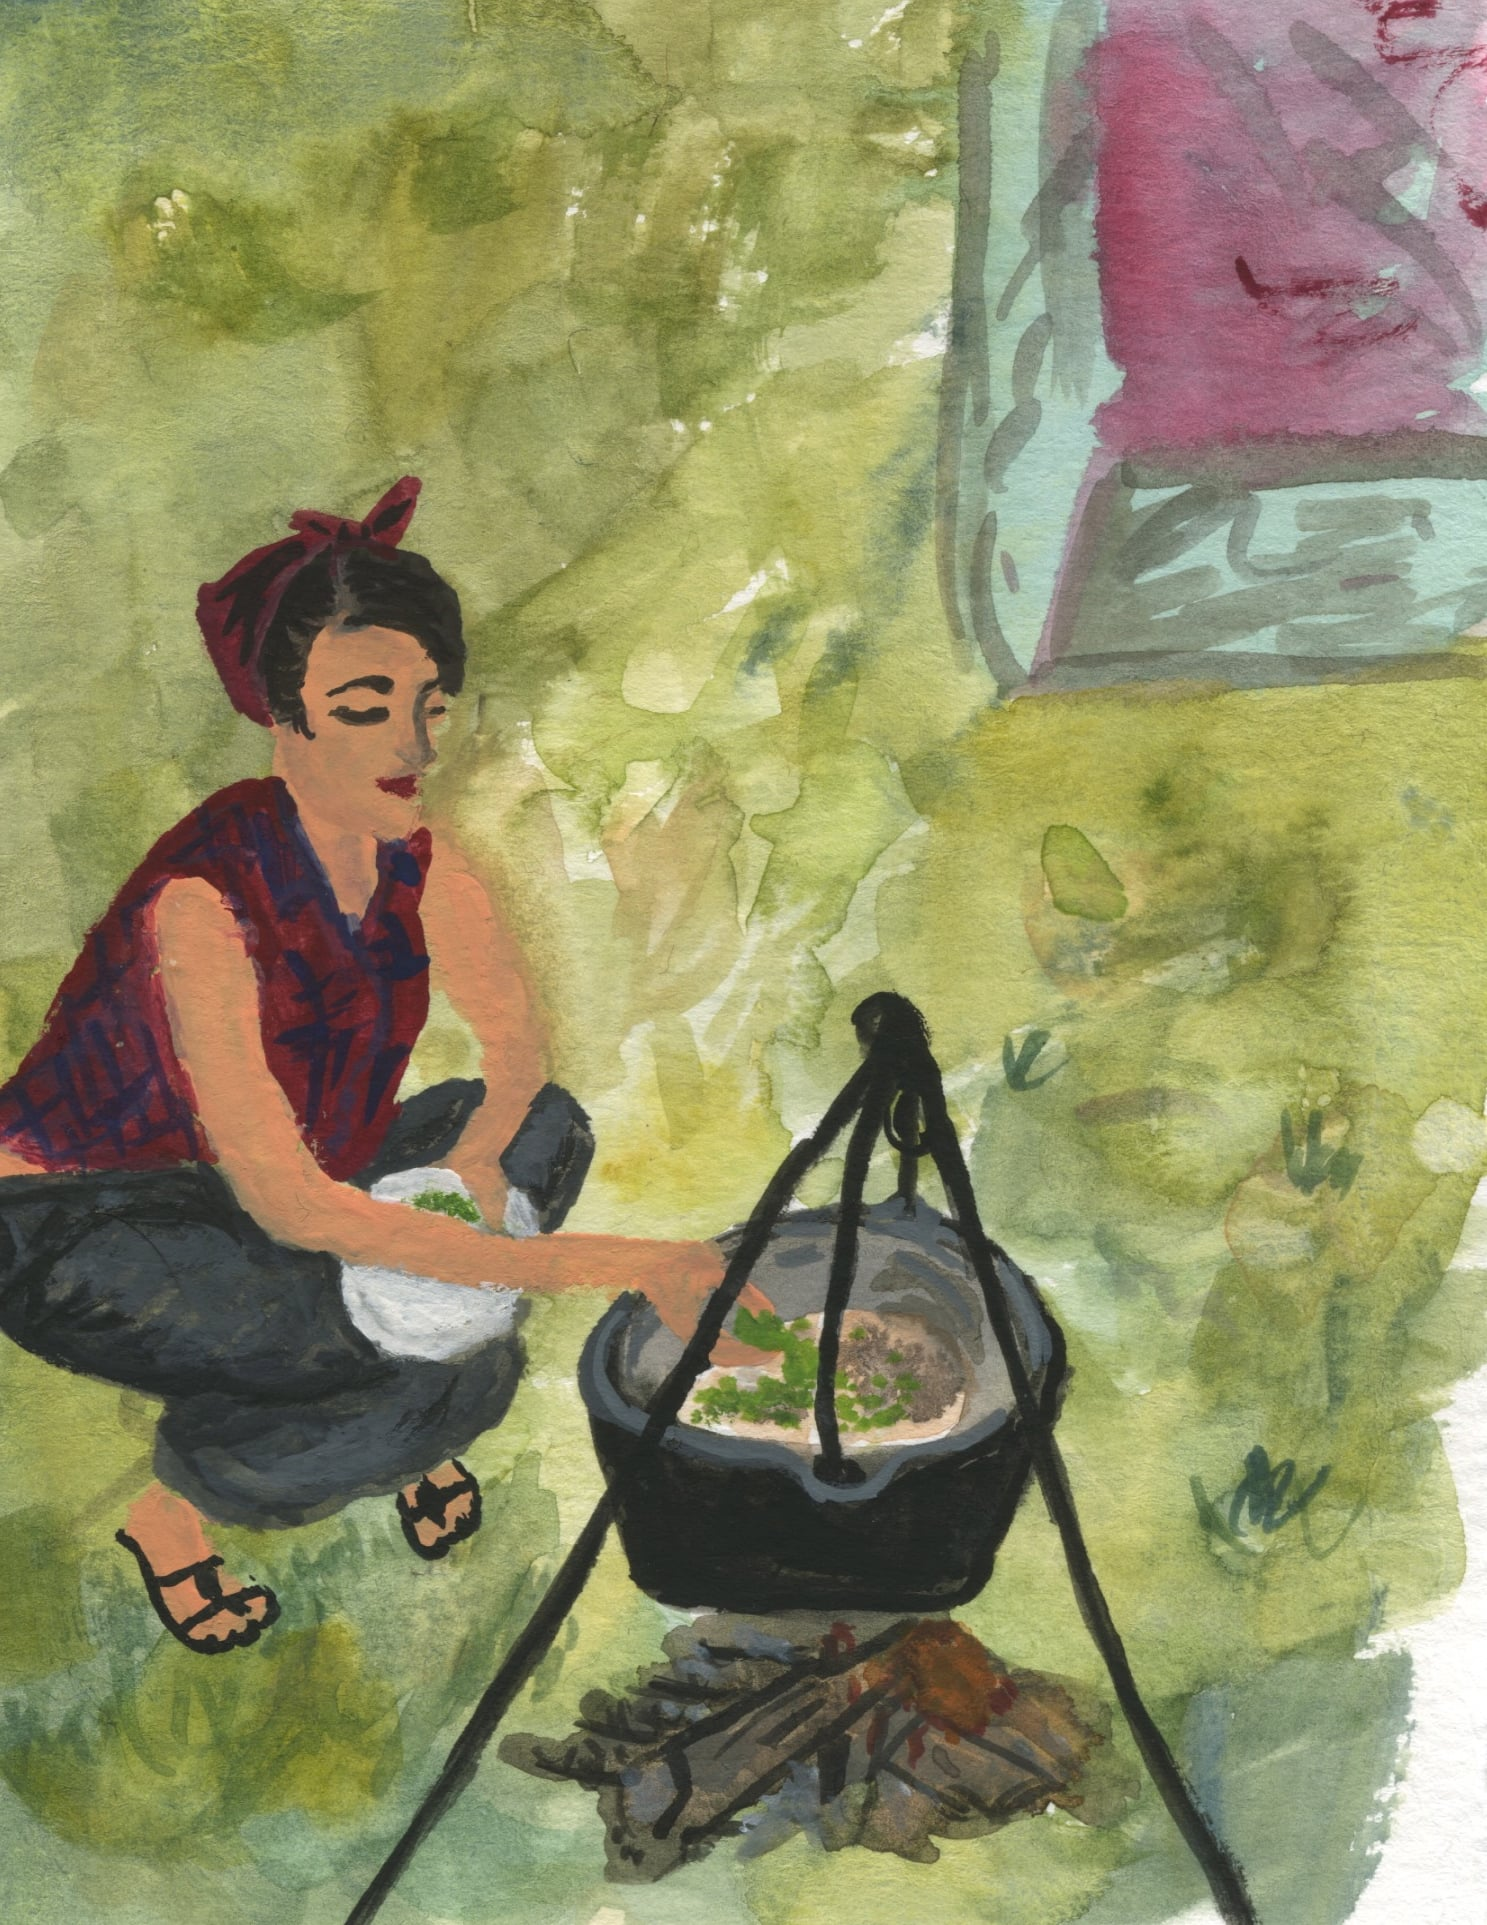 one of my first gouache studies, inspired by a tiny picture in Saveur magazine of a lovely lady making soup outside.